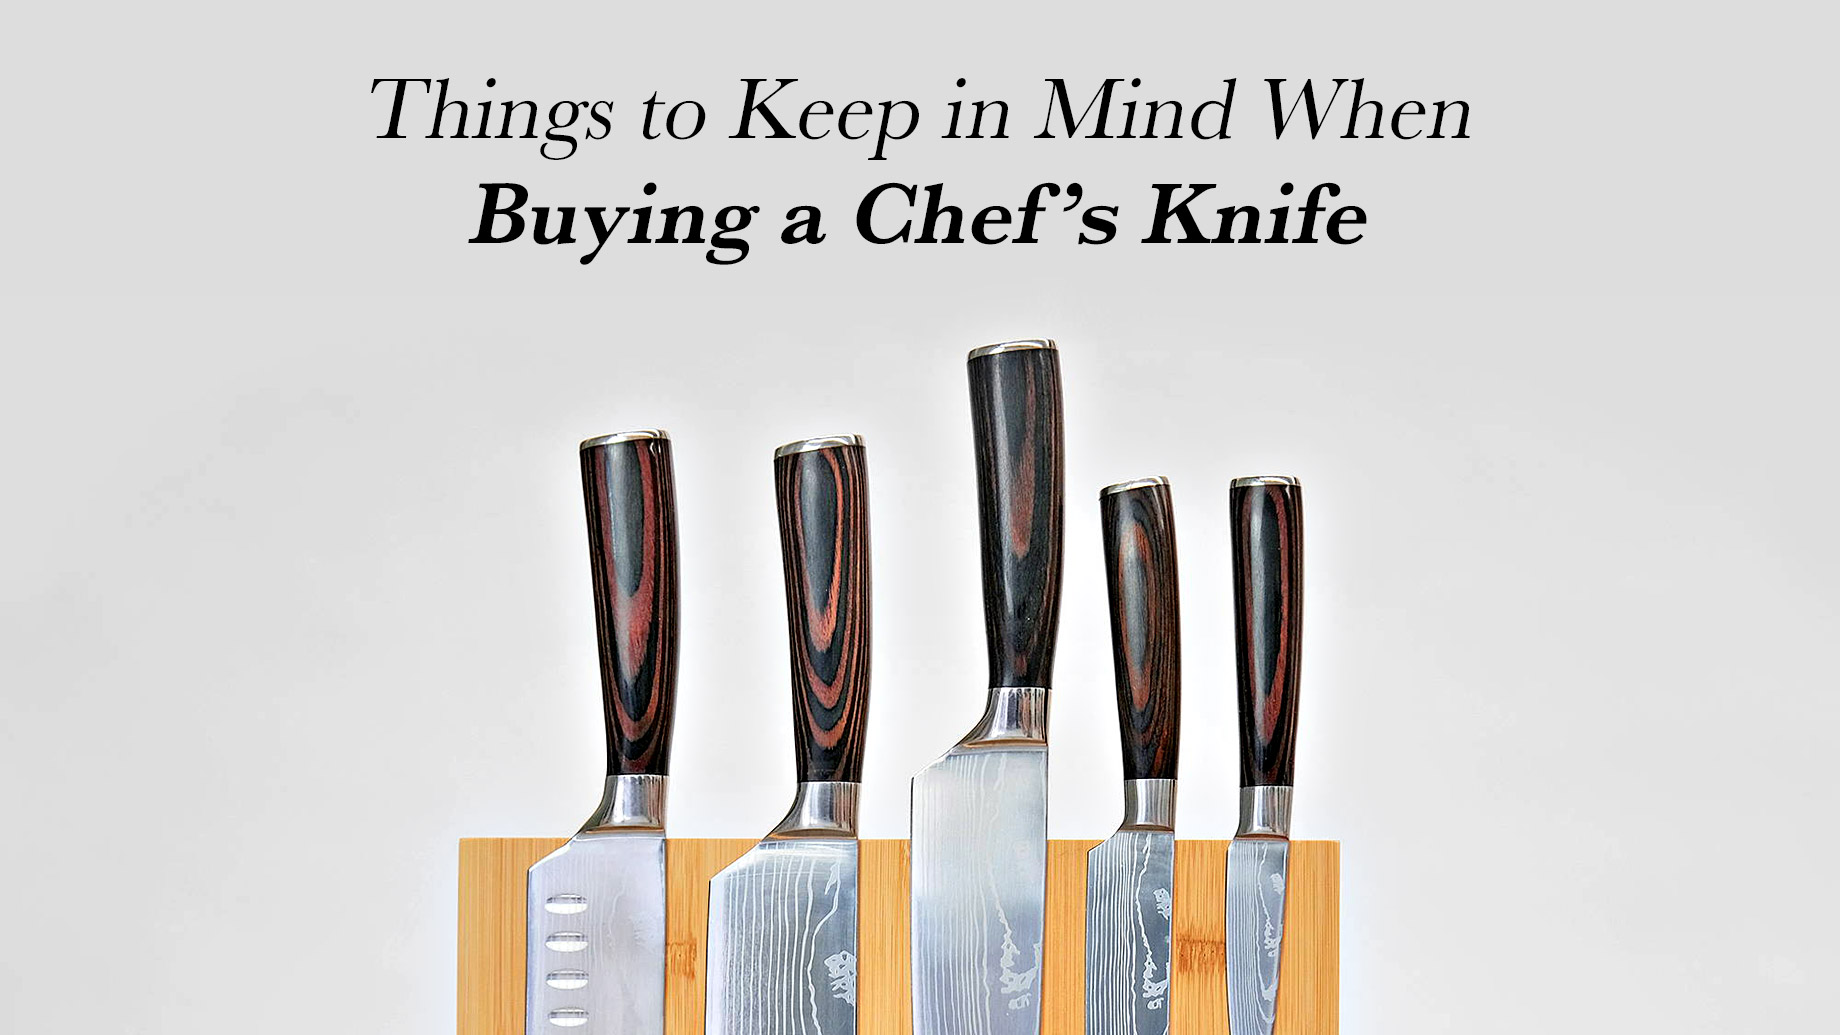 Things to Keep in Mind When Buying a Chef's Knife